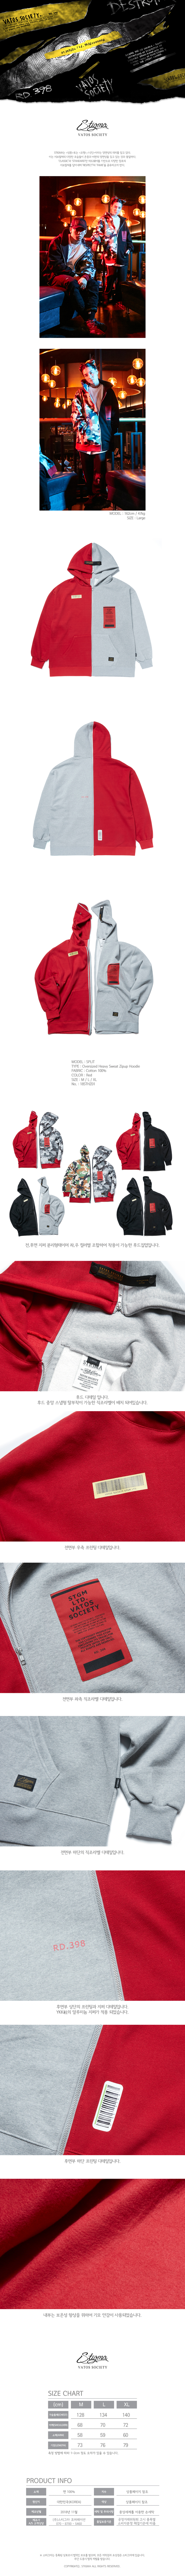 스티그마 STIGMA SPLIT OVERSIZED HEAVY SWEAT ZIPUP HOODIE RED